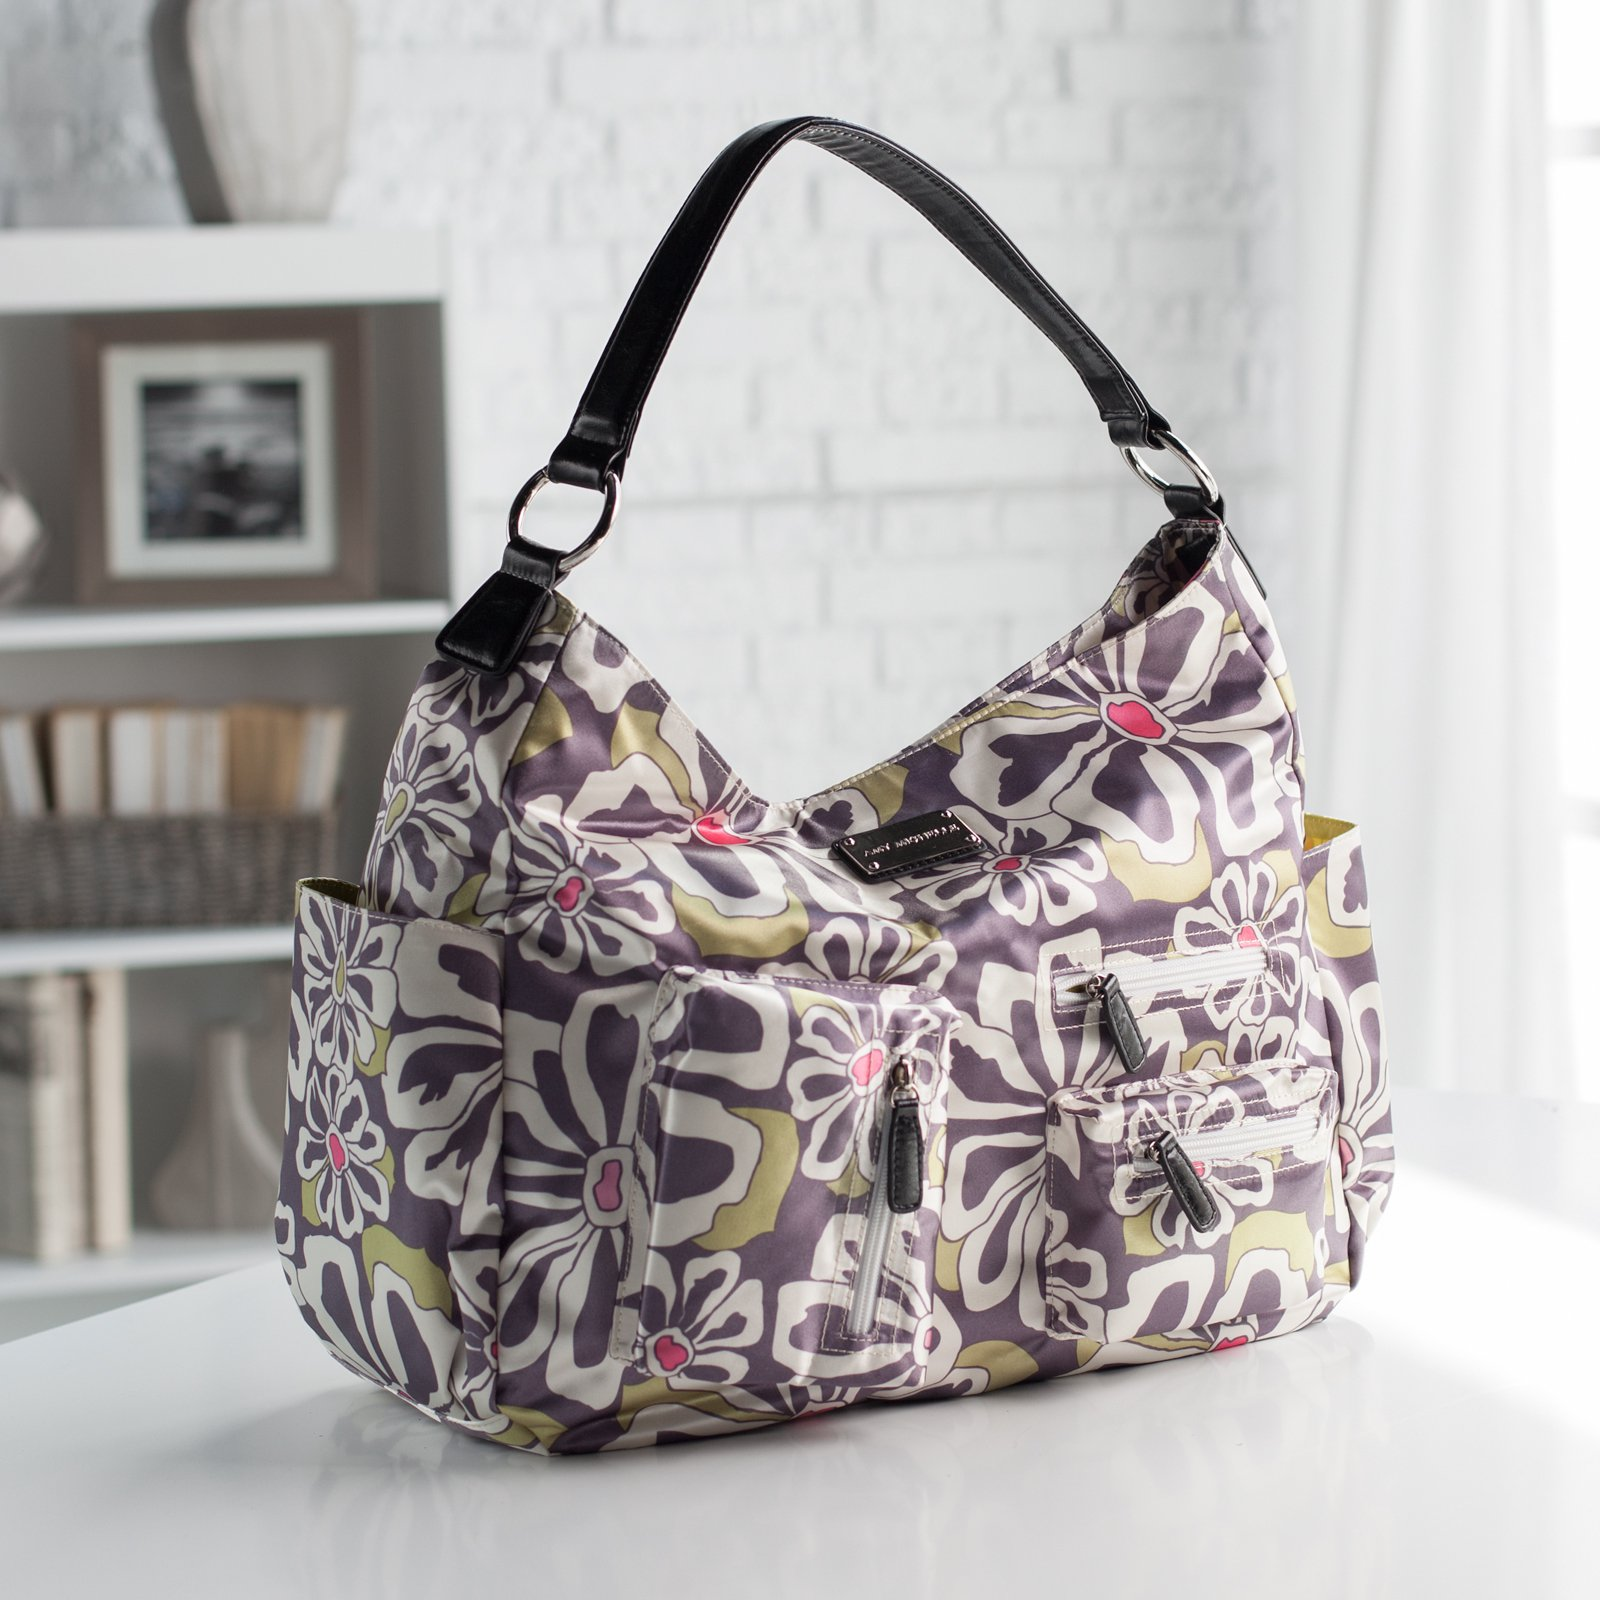 Amy Michelle Lotus Go Work Tote - Charcoal Floral